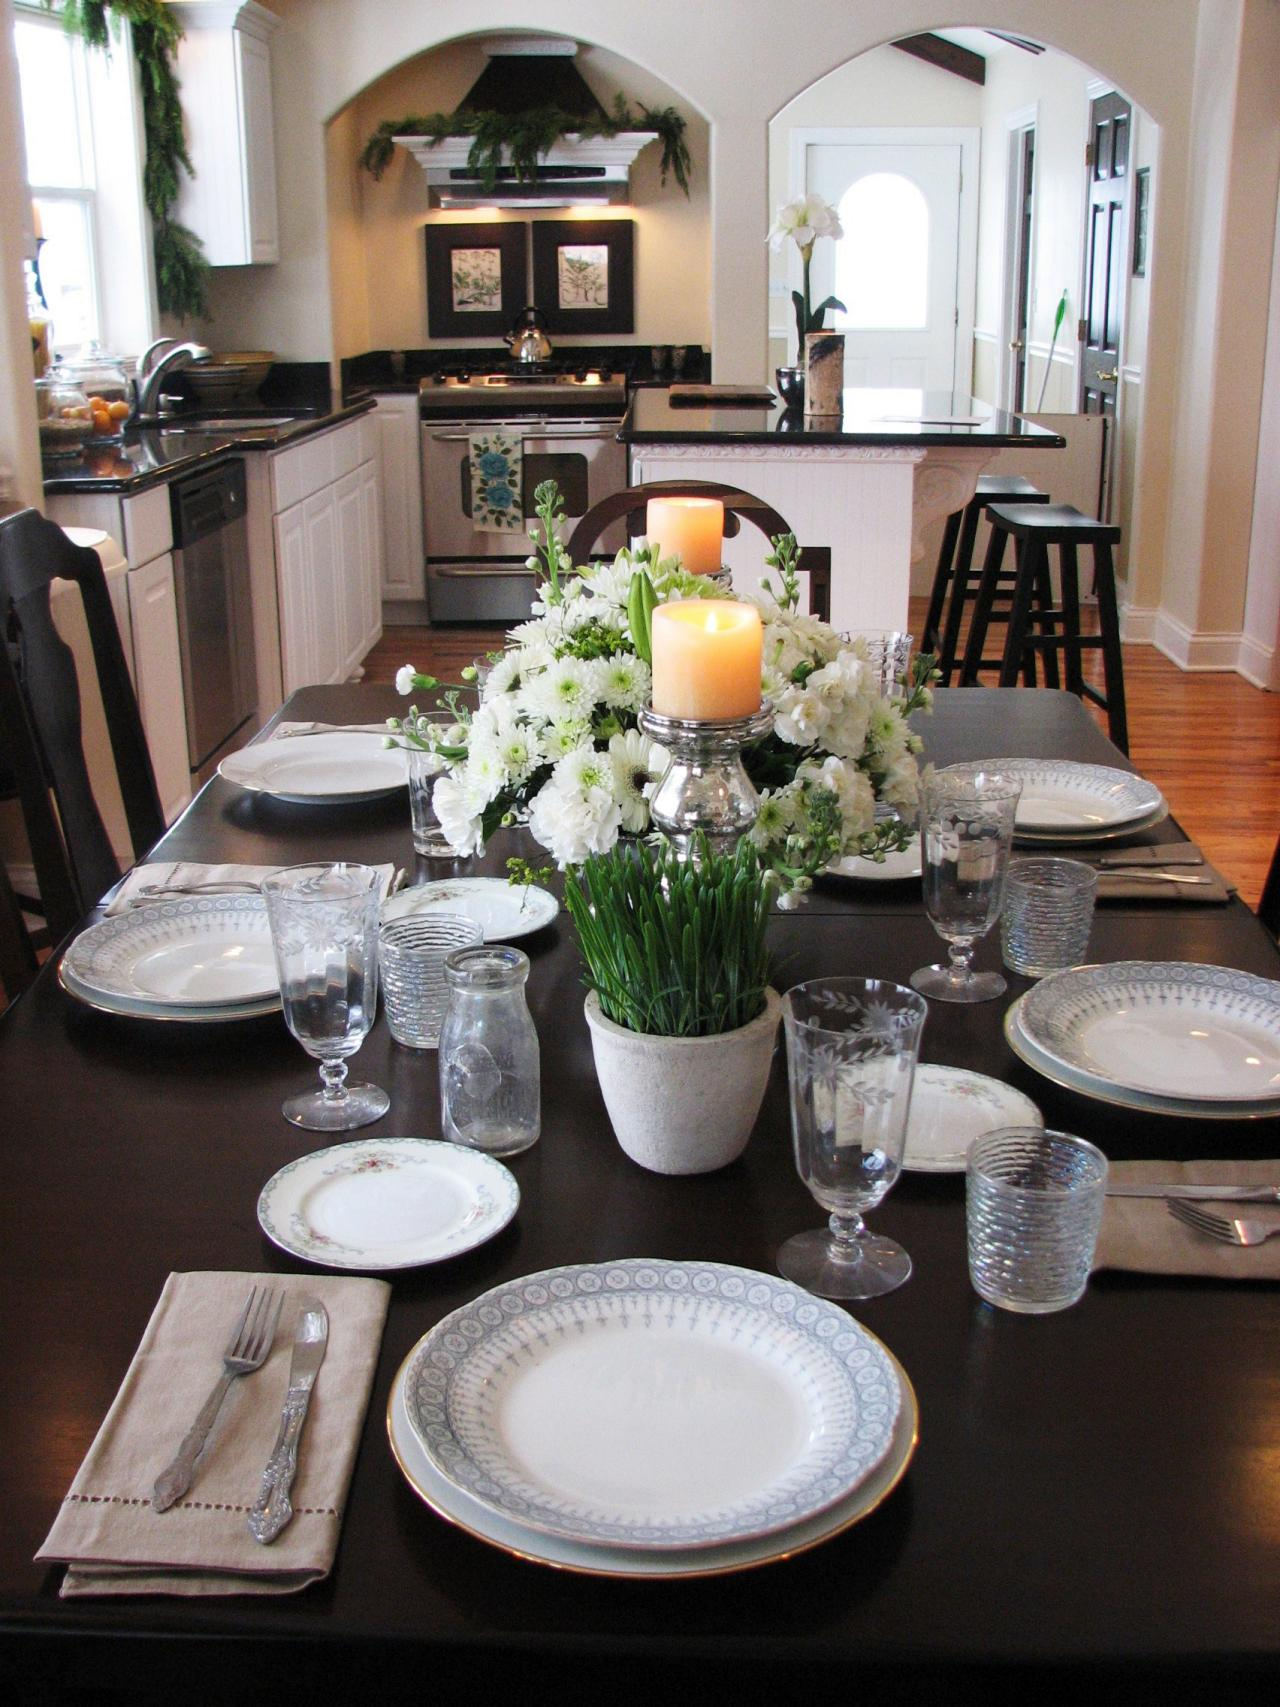 Kitchen Table Centerpiece Design Ideas Hgtv Pictures Hgtv